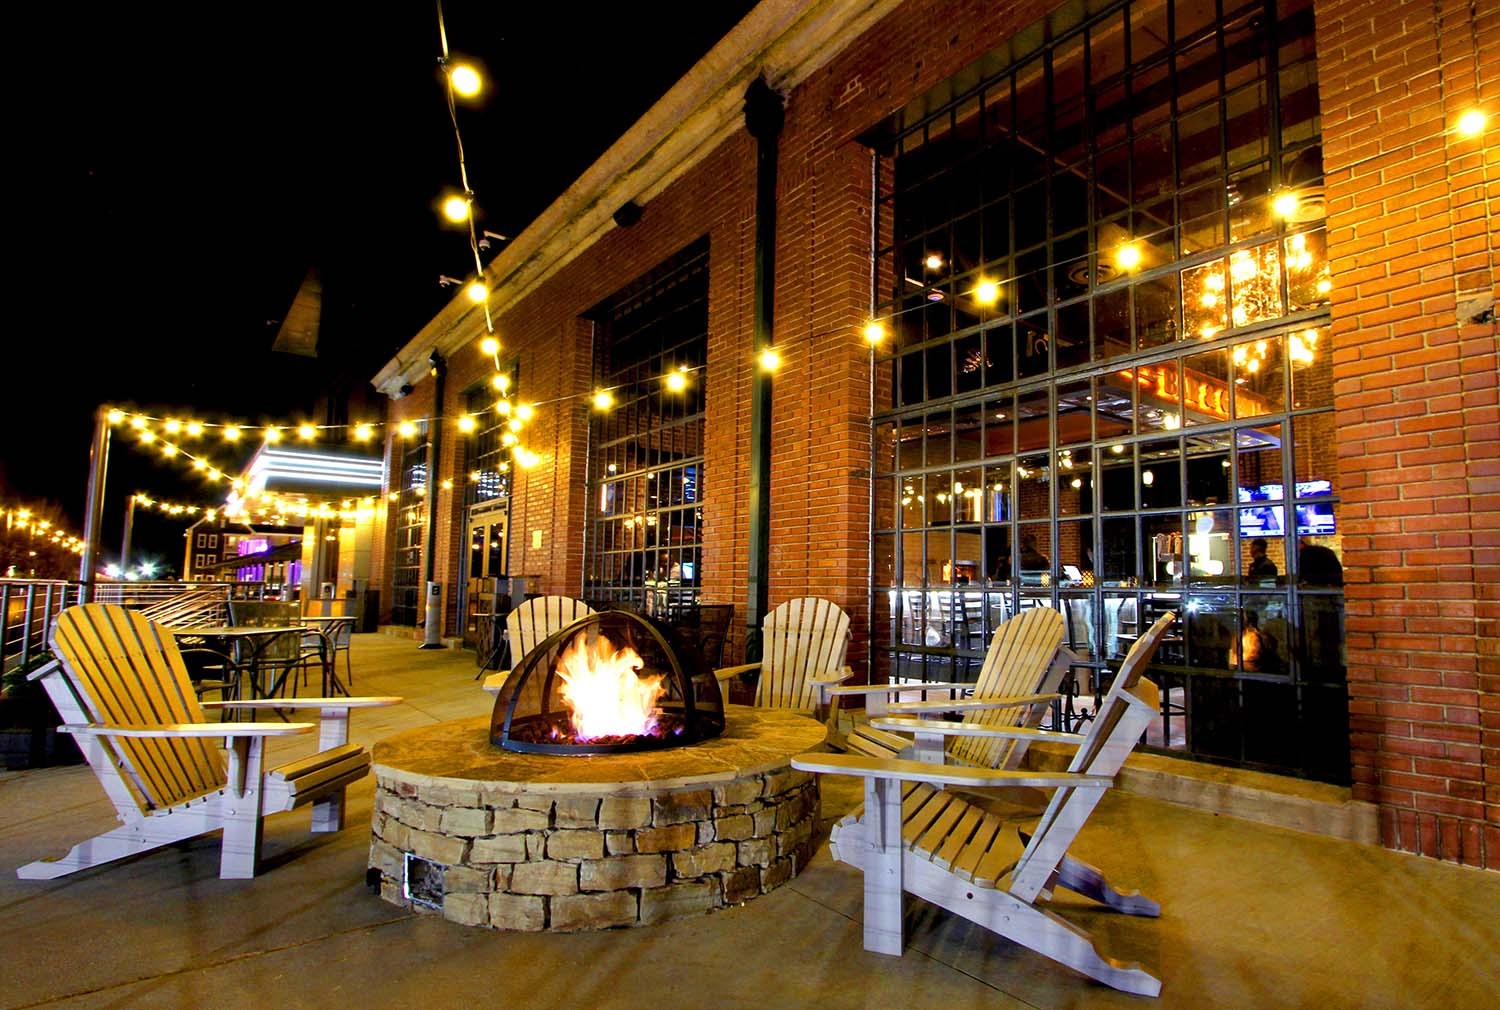 Patio seating with fire pit.